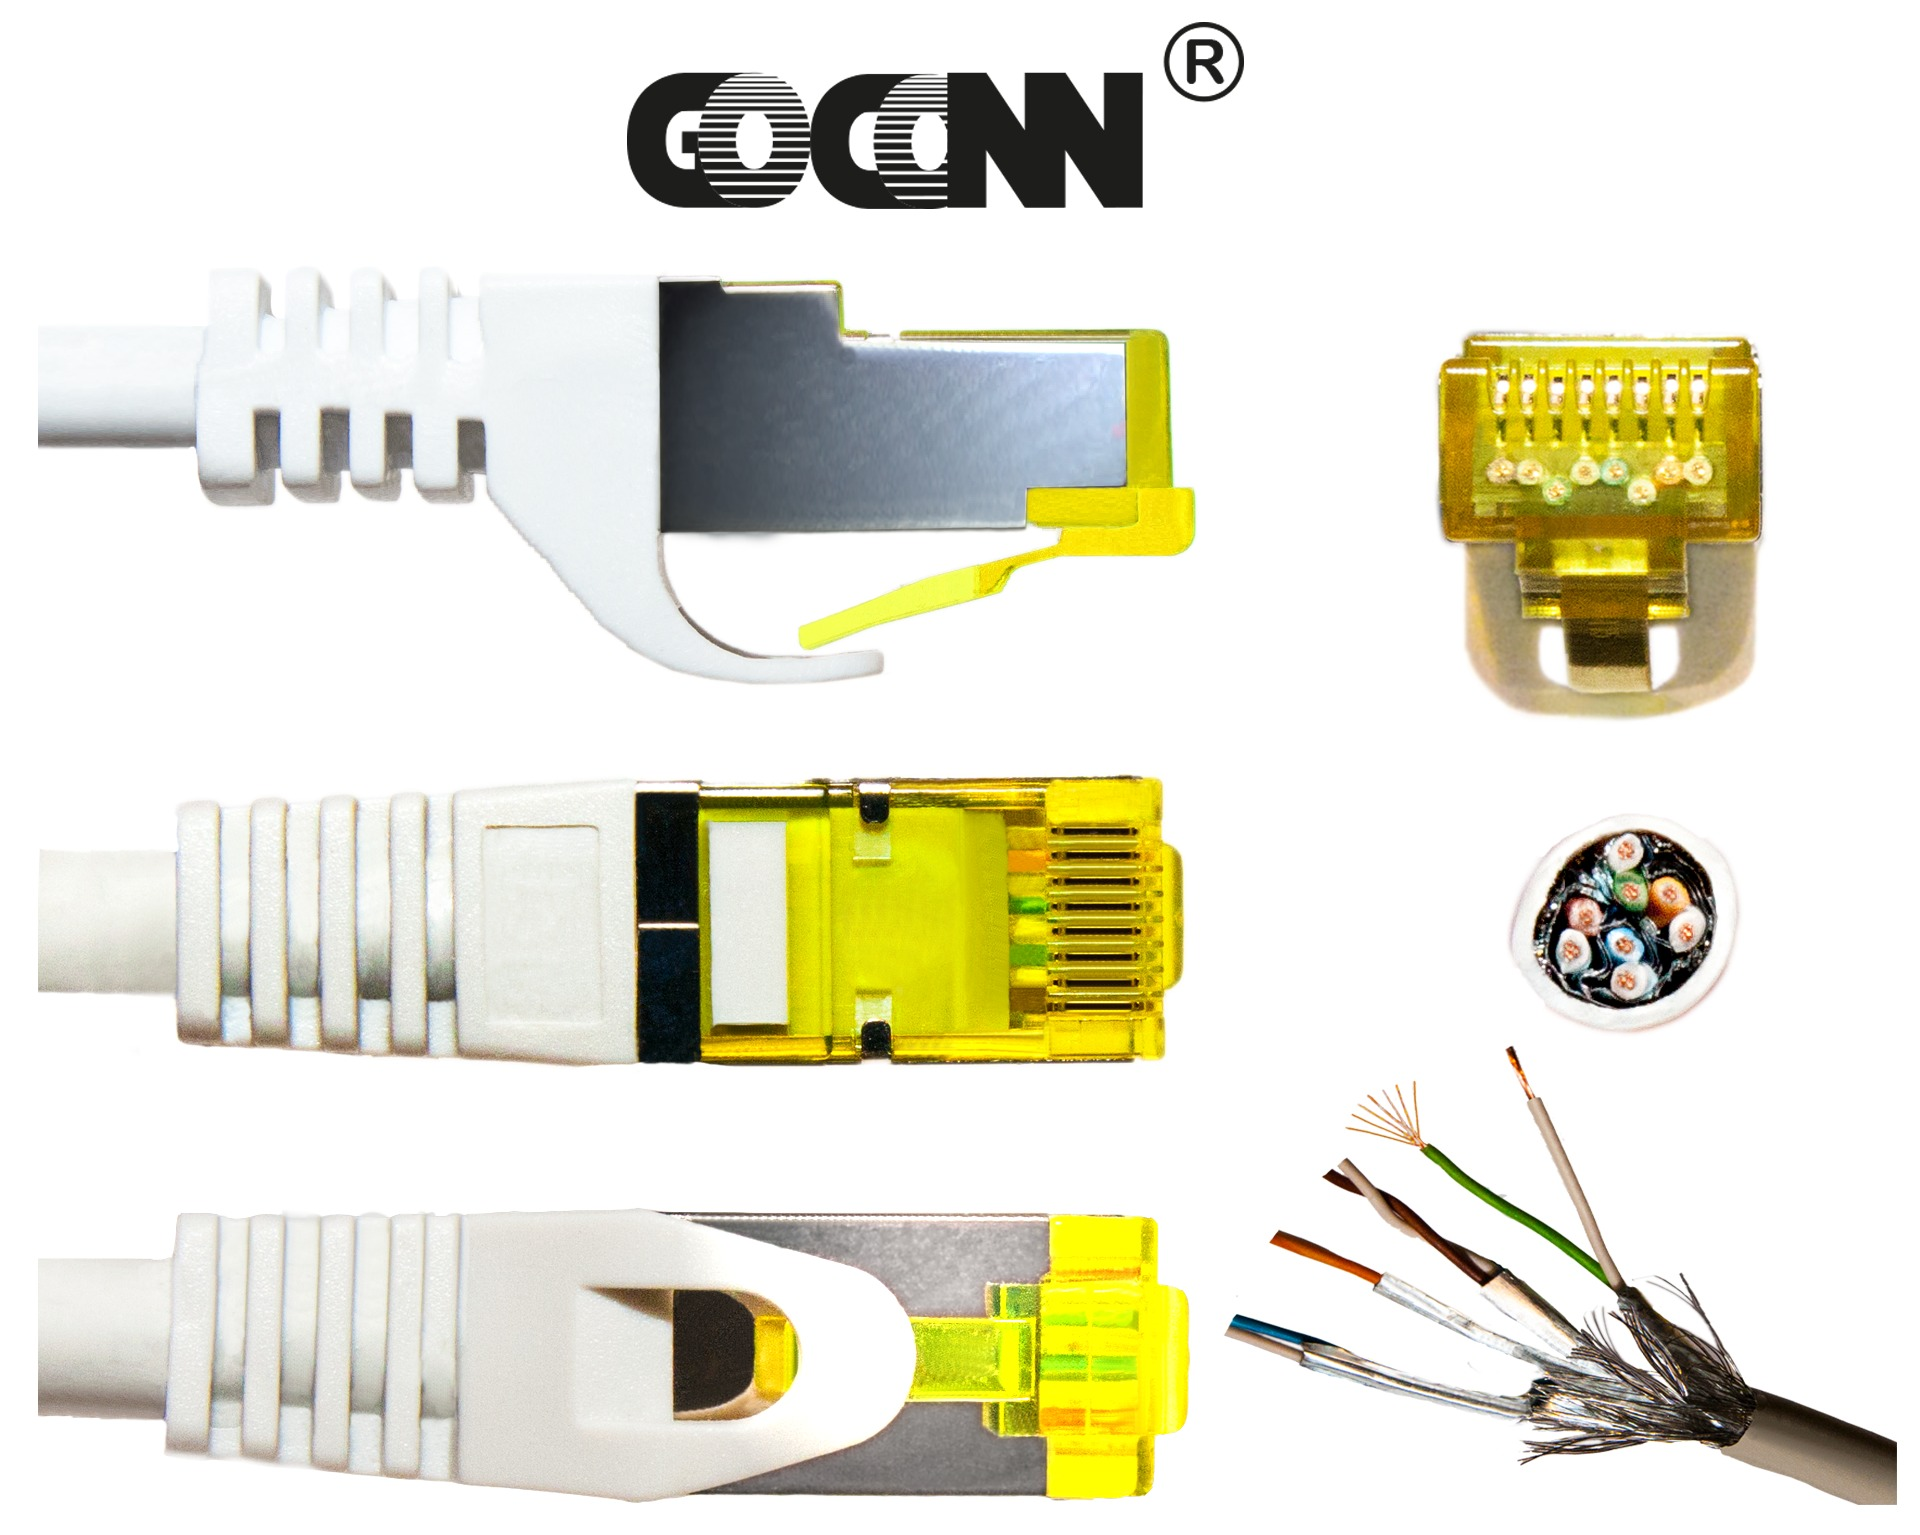 GoConn Patchkabel mit Cat7 Rohkabel 20m orange S/FTP PiMF 500MHz 2xgeschirmt